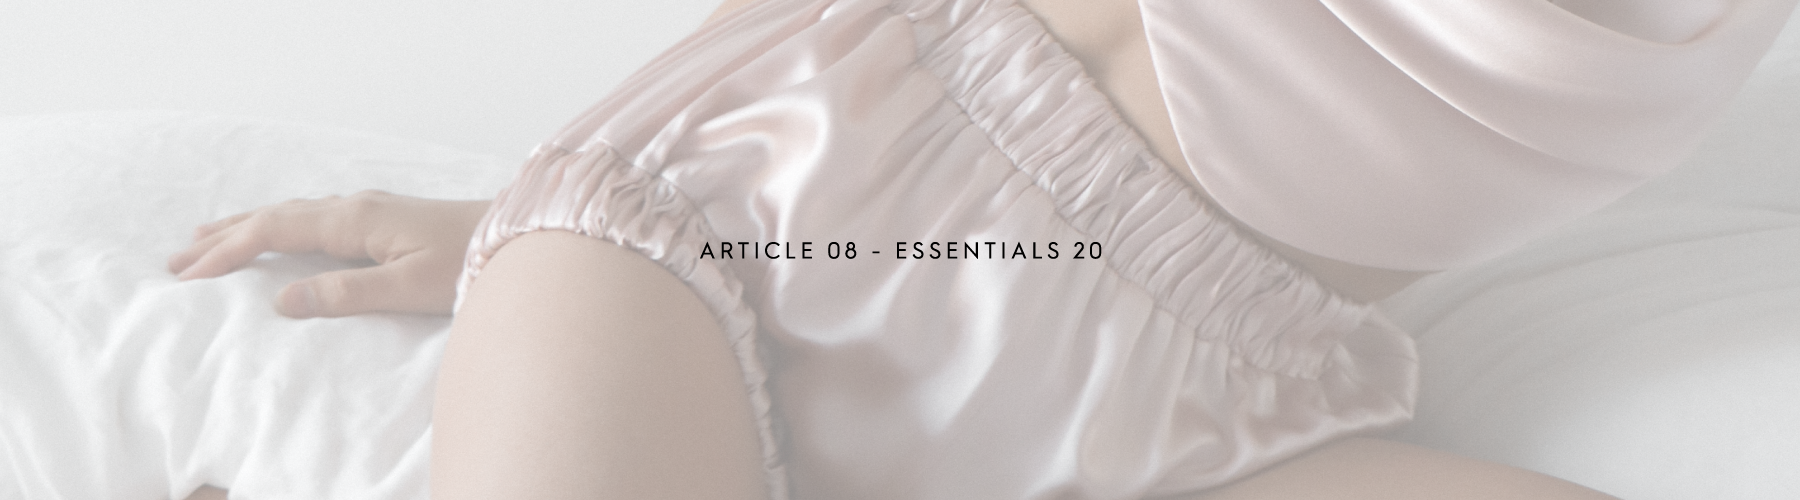 Essentials20